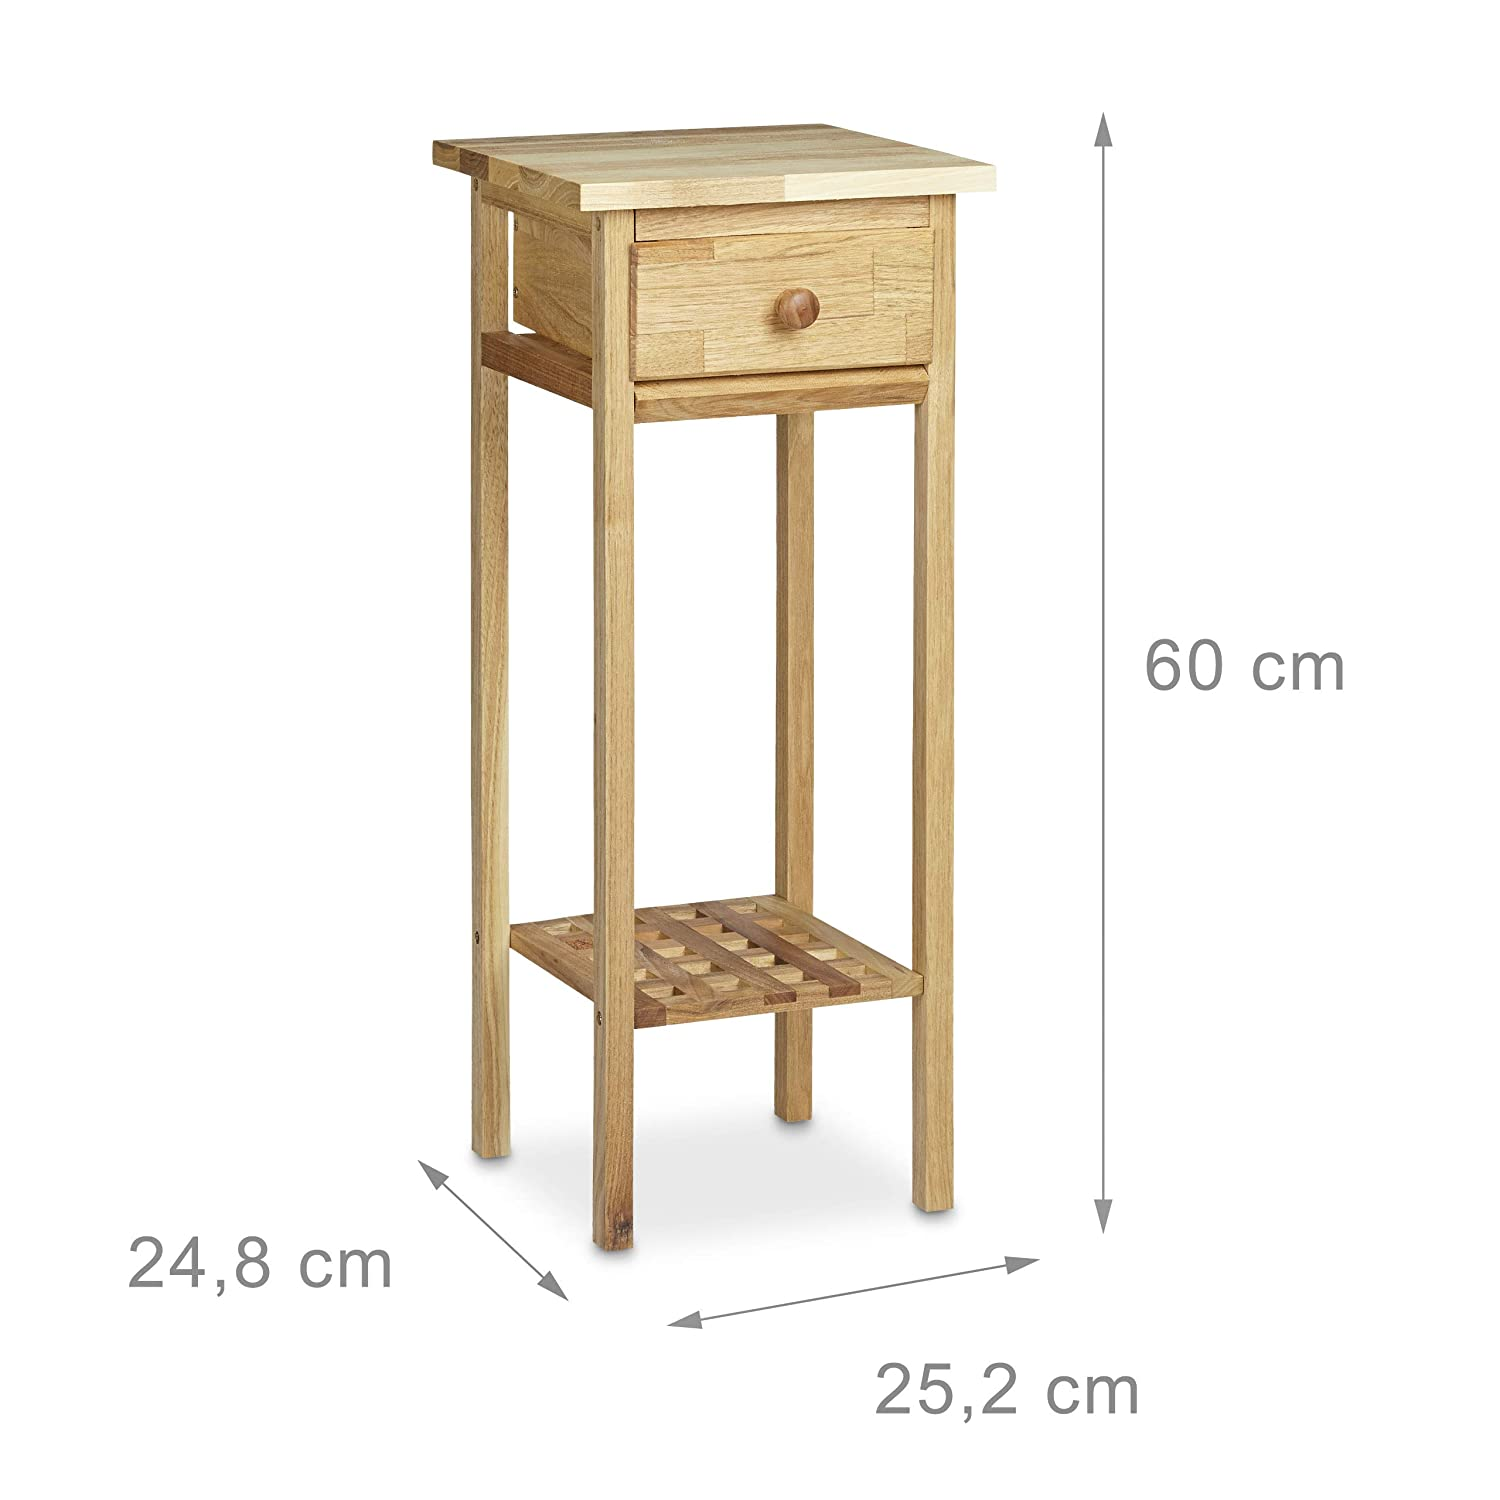 Sidetable 25 Cm.Relaxdays Walnut Telephone Table 60 X 25 X 25 Cm Side Table End Table With Drawer Console Table Wooden Plant Stand 60 Cm Tall Flower Table Natural